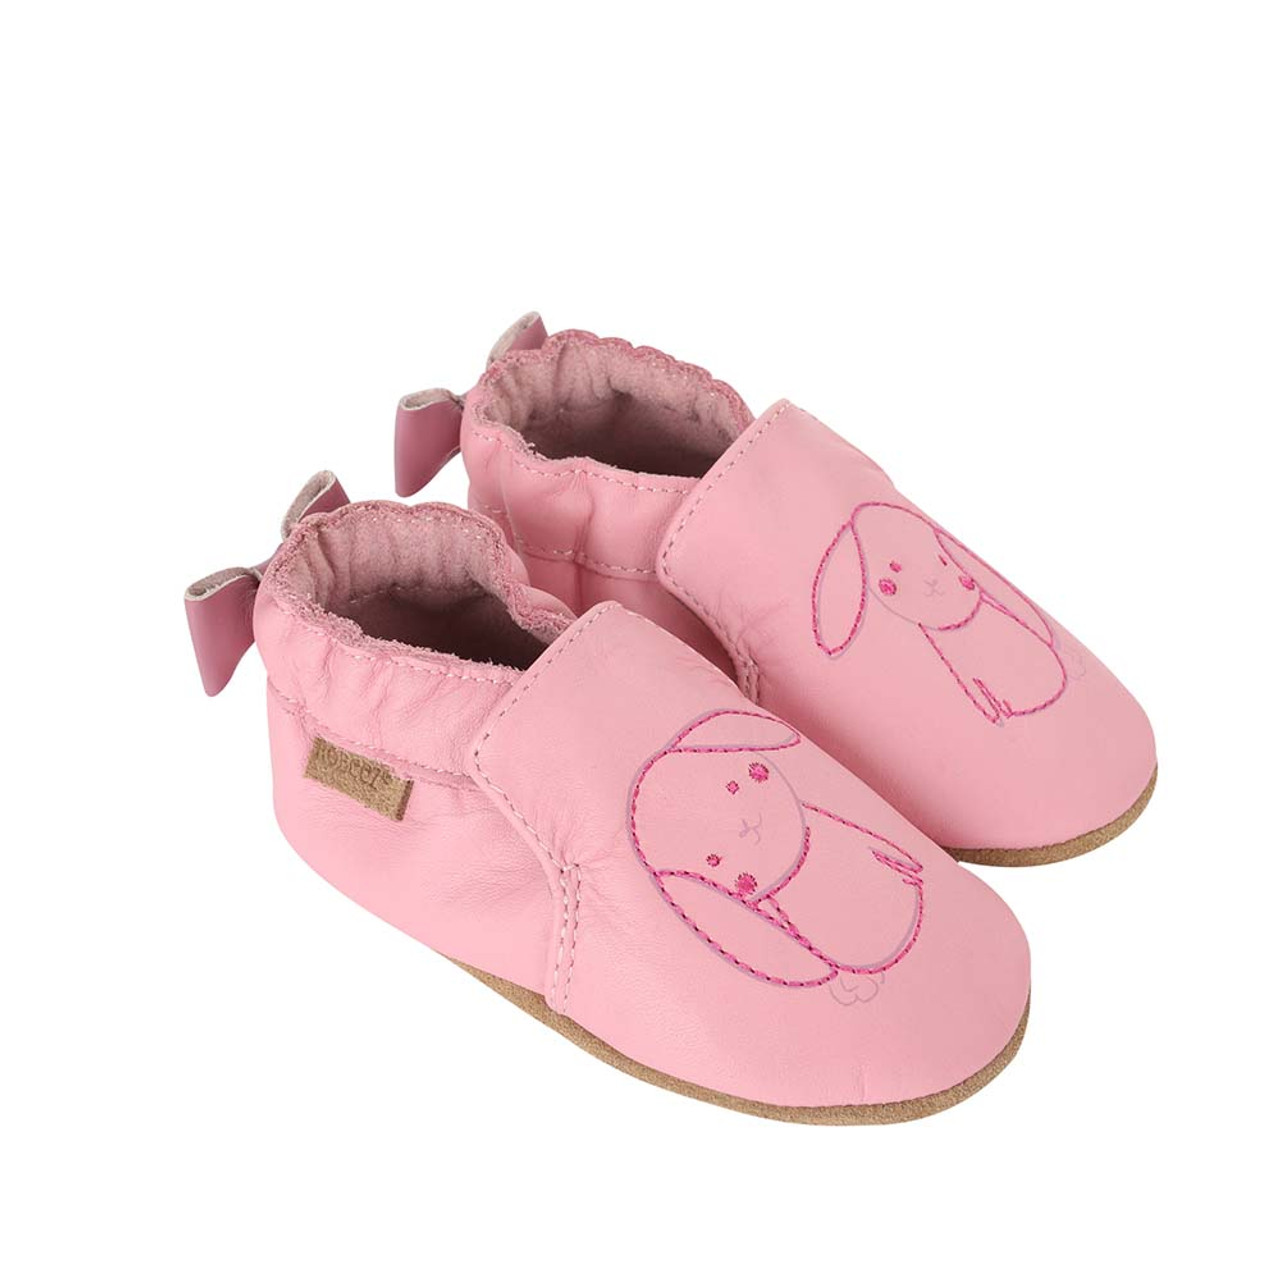 Robeez Wildflowers Crib Shoe(Infant/Toddler Girls') -Pastel Pink Store Cheap Price 2018 Online 6dYiOF